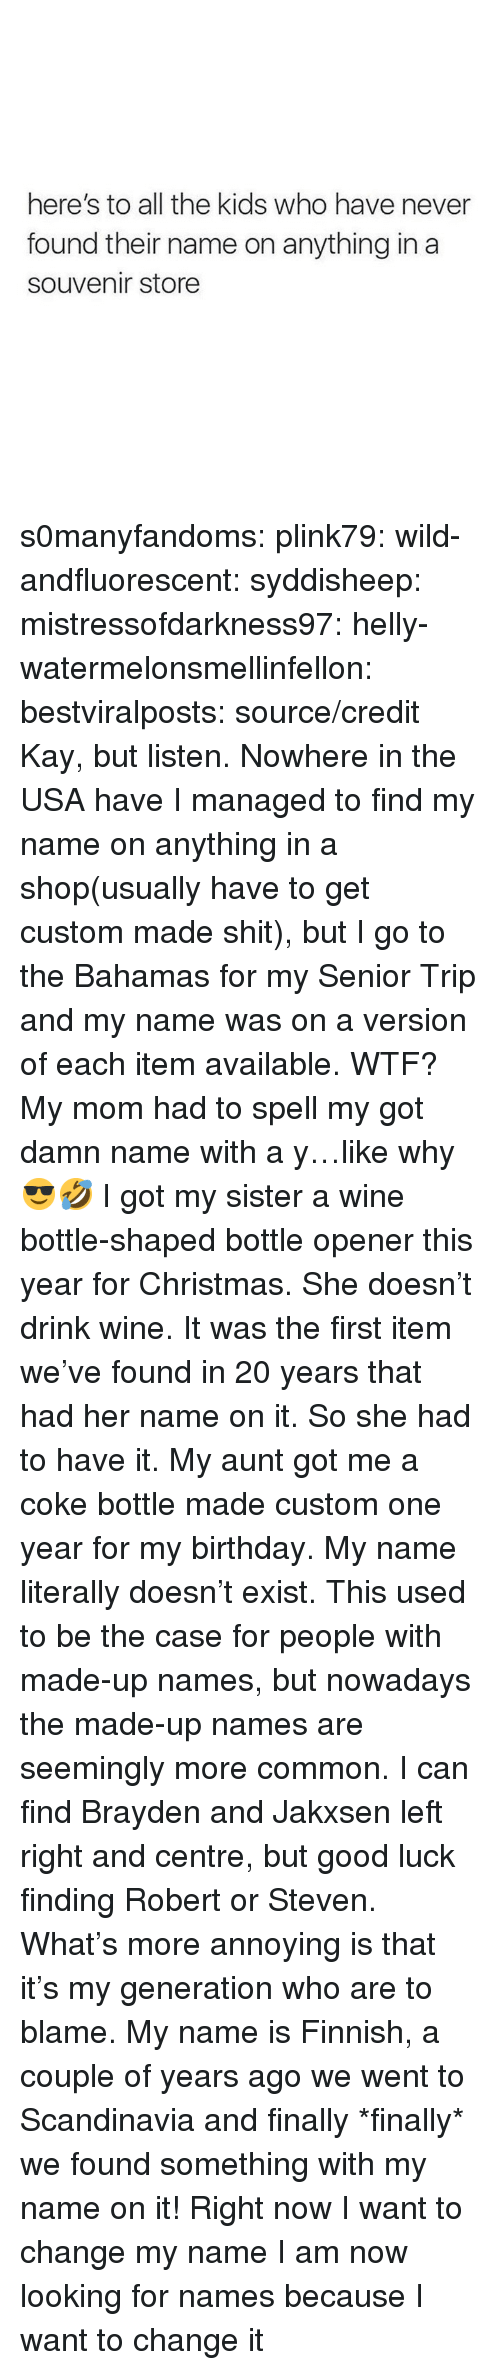 Birthday, Christmas, and Instagram: here's to all the kids who have never  found their name on anything in a  souvenir store s0manyfandoms: plink79:  wild-andfluorescent:  syddisheep:  mistressofdarkness97:  helly-watermelonsmellinfellon:  bestviralposts: source/credit Kay, but listen. Nowhere in the USA have I managed to find my name on anything in a shop(usually have to get custom made shit), but I go to the Bahamas for my Senior Trip and my name was on a version of each item available. WTF?   My mom had to spell my got damn name with a y…like why 😎🤣   I got my sister a wine bottle-shaped bottle opener this year for Christmas. She doesn't drink wine. It was the first item we've found in 20 years that had her name on it. So she had to have it.    My aunt got me a coke bottle made custom one year for my birthday. My name literally doesn't exist.    This used to be the case for people with made-up names, but nowadays the made-up names are seemingly more common. I can find Brayden and Jakxsen left right and centre, but good luck finding Robert or Steven. What's more annoying is that it's my generation who are to blame.  My name is Finnish, a couple of years ago we went to Scandinavia and finally *finally* we found something with my name on it!  Right now I want to change my name I am now looking for names because I want to change it